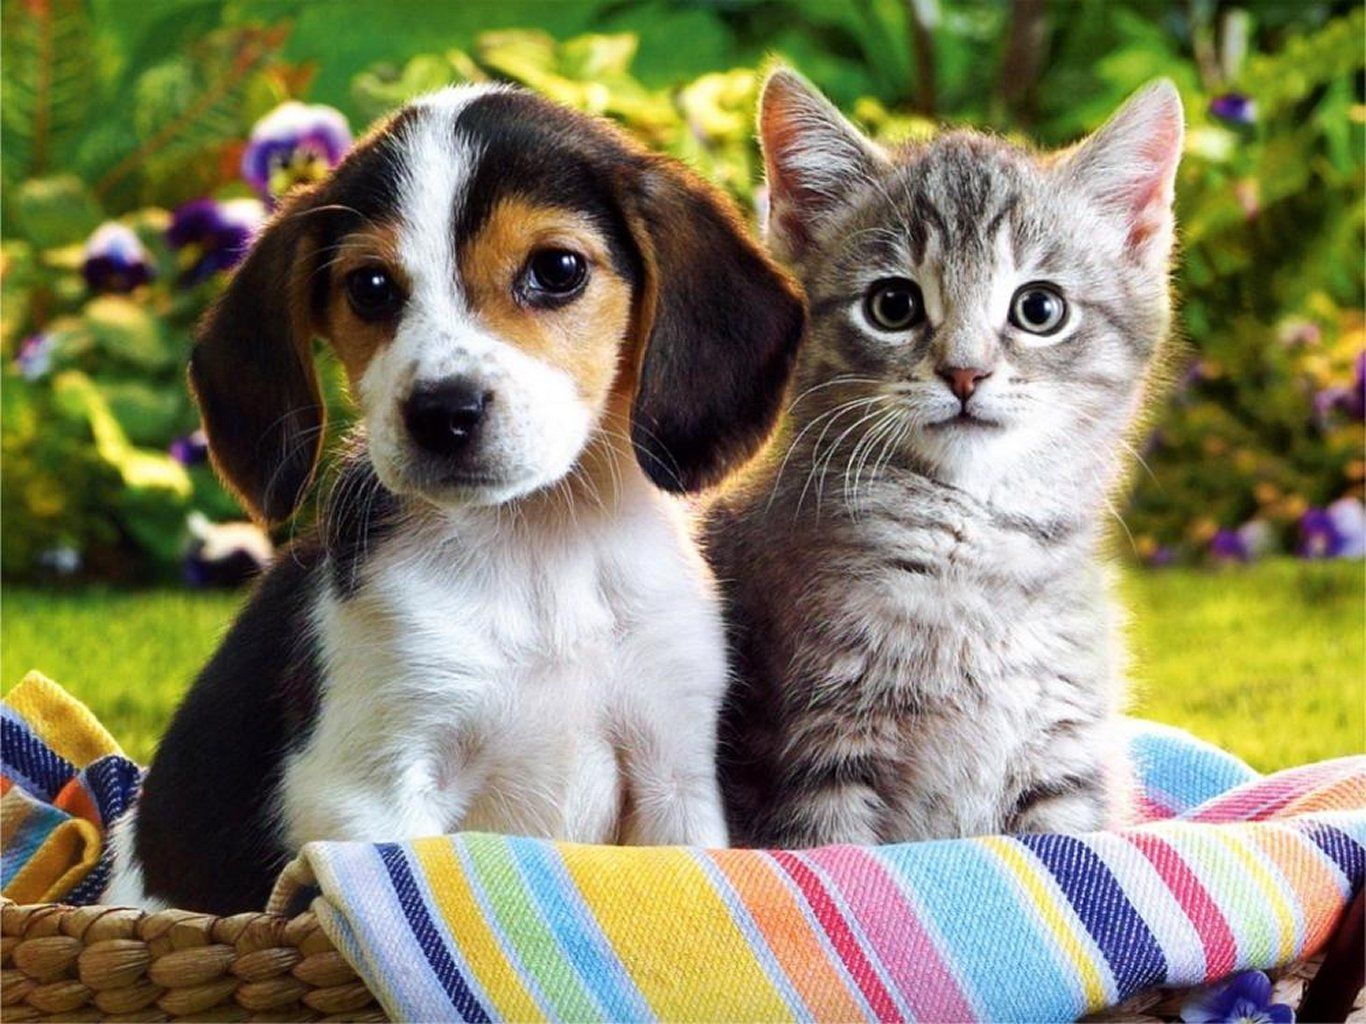 Pin By Puppy Names Plus On Puppies Group Cute Puppies And Kittens Cute Cats And Dogs Kittens And Puppies